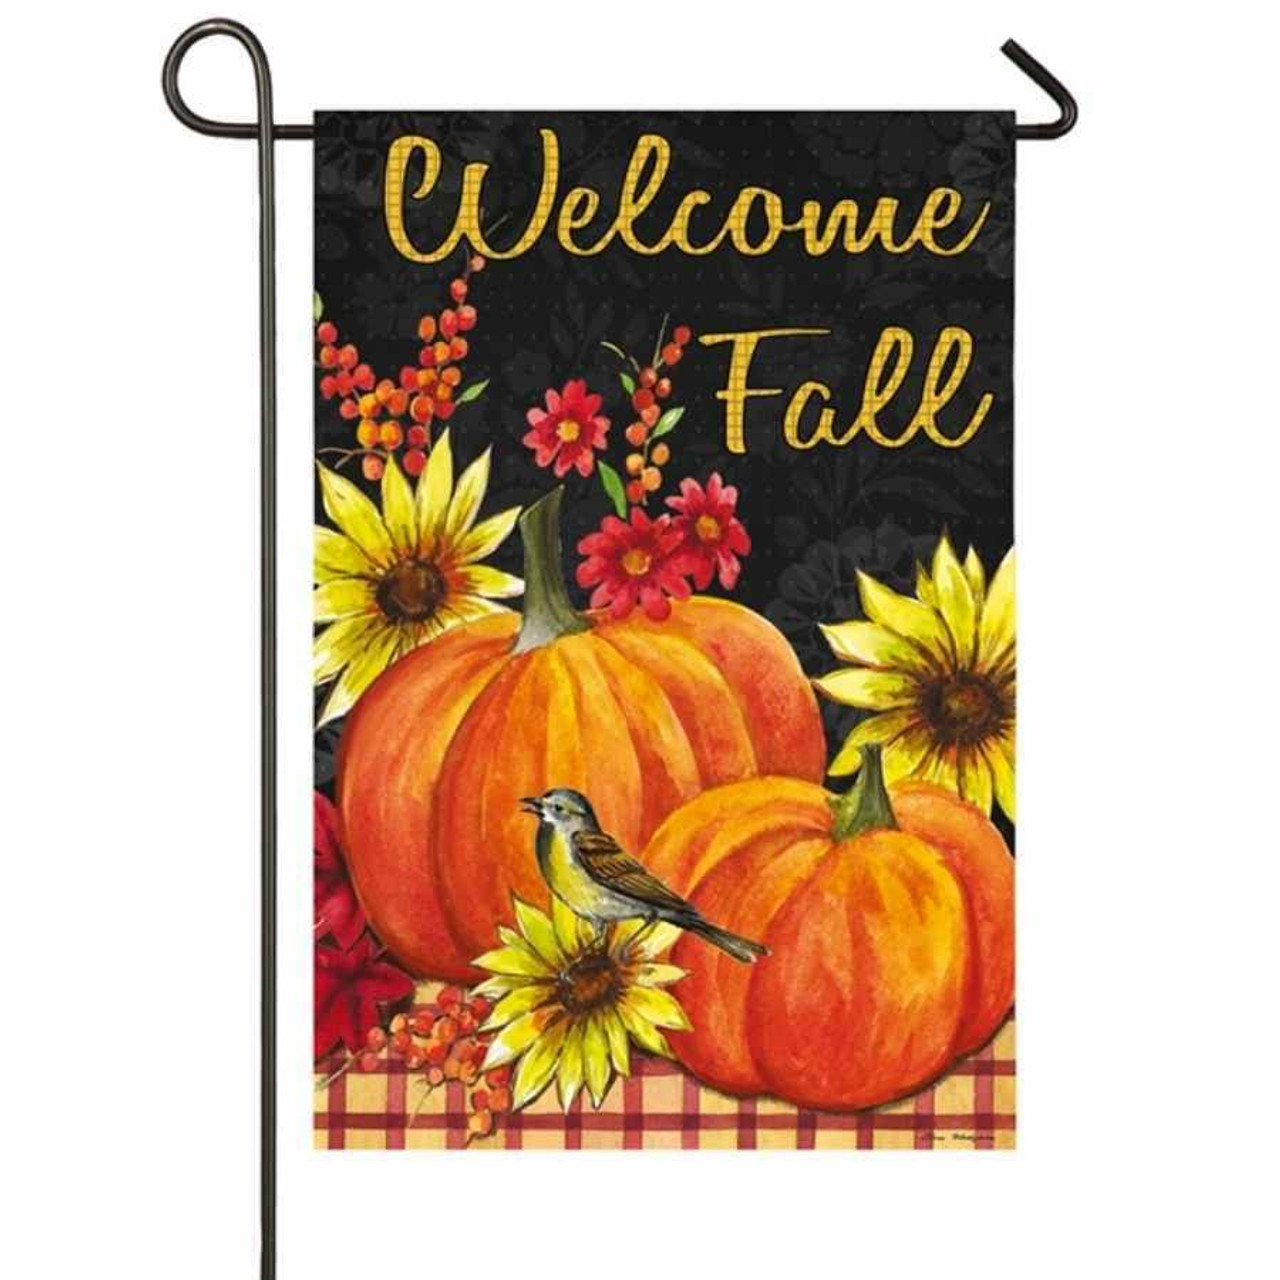 """A garden flag featuring orange pumpkins and yellow sunflowers on a plaid tablecloth. A bird sits on one of the sunflowers, and the background is black. """"Welcome Fall"""" is written on the top."""